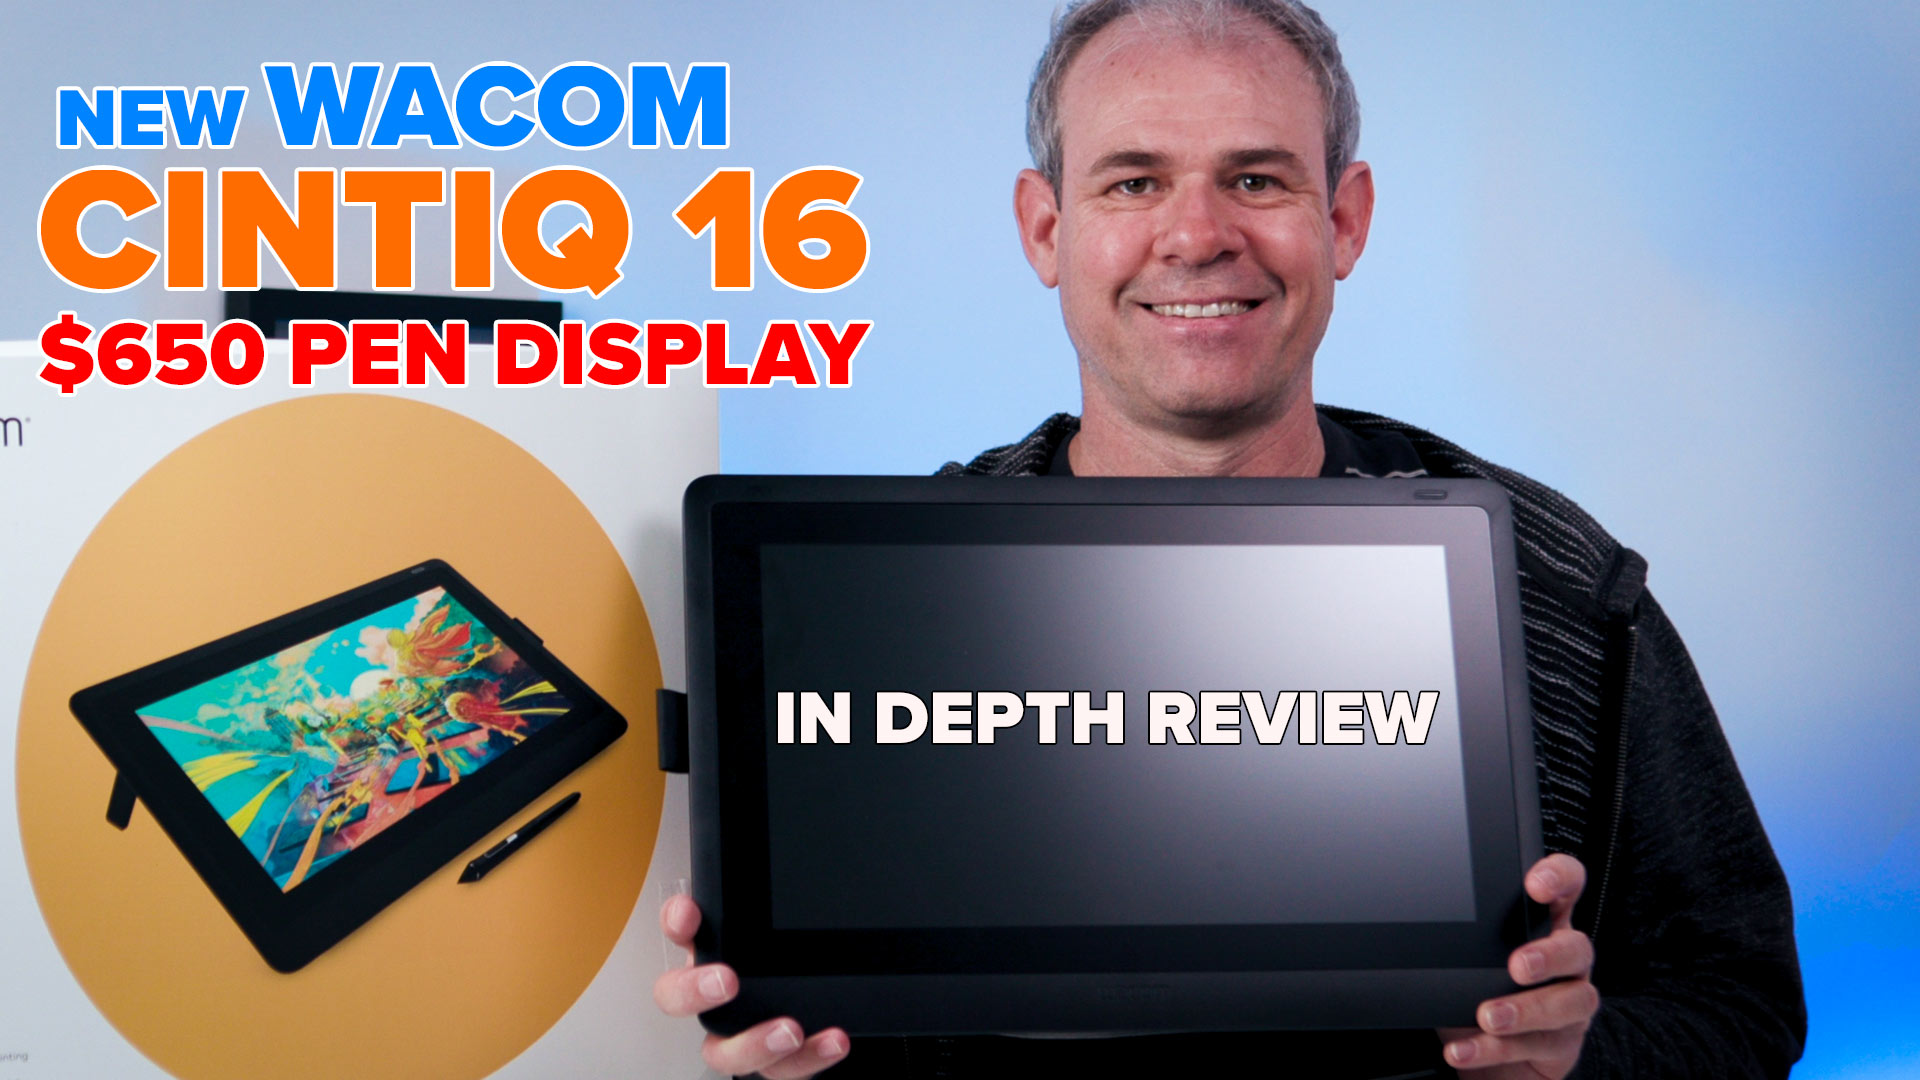 Wacom Cintiq 16 review  An inexpensive Pen display from Wacom